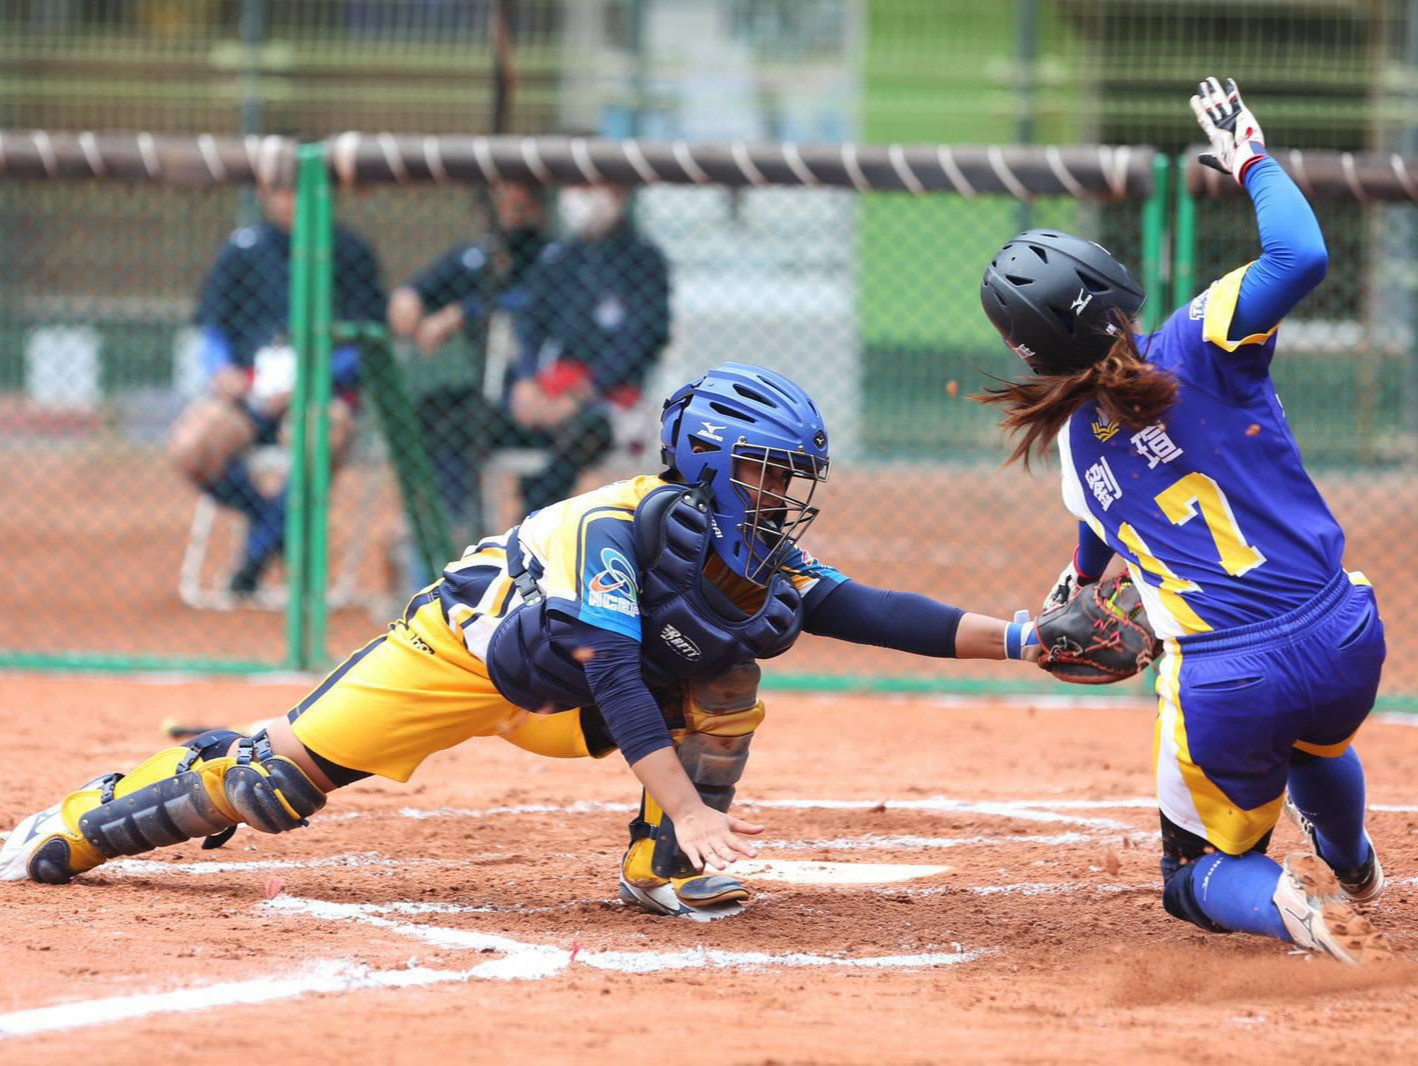 Taiwan becomes first country to open professional softball season